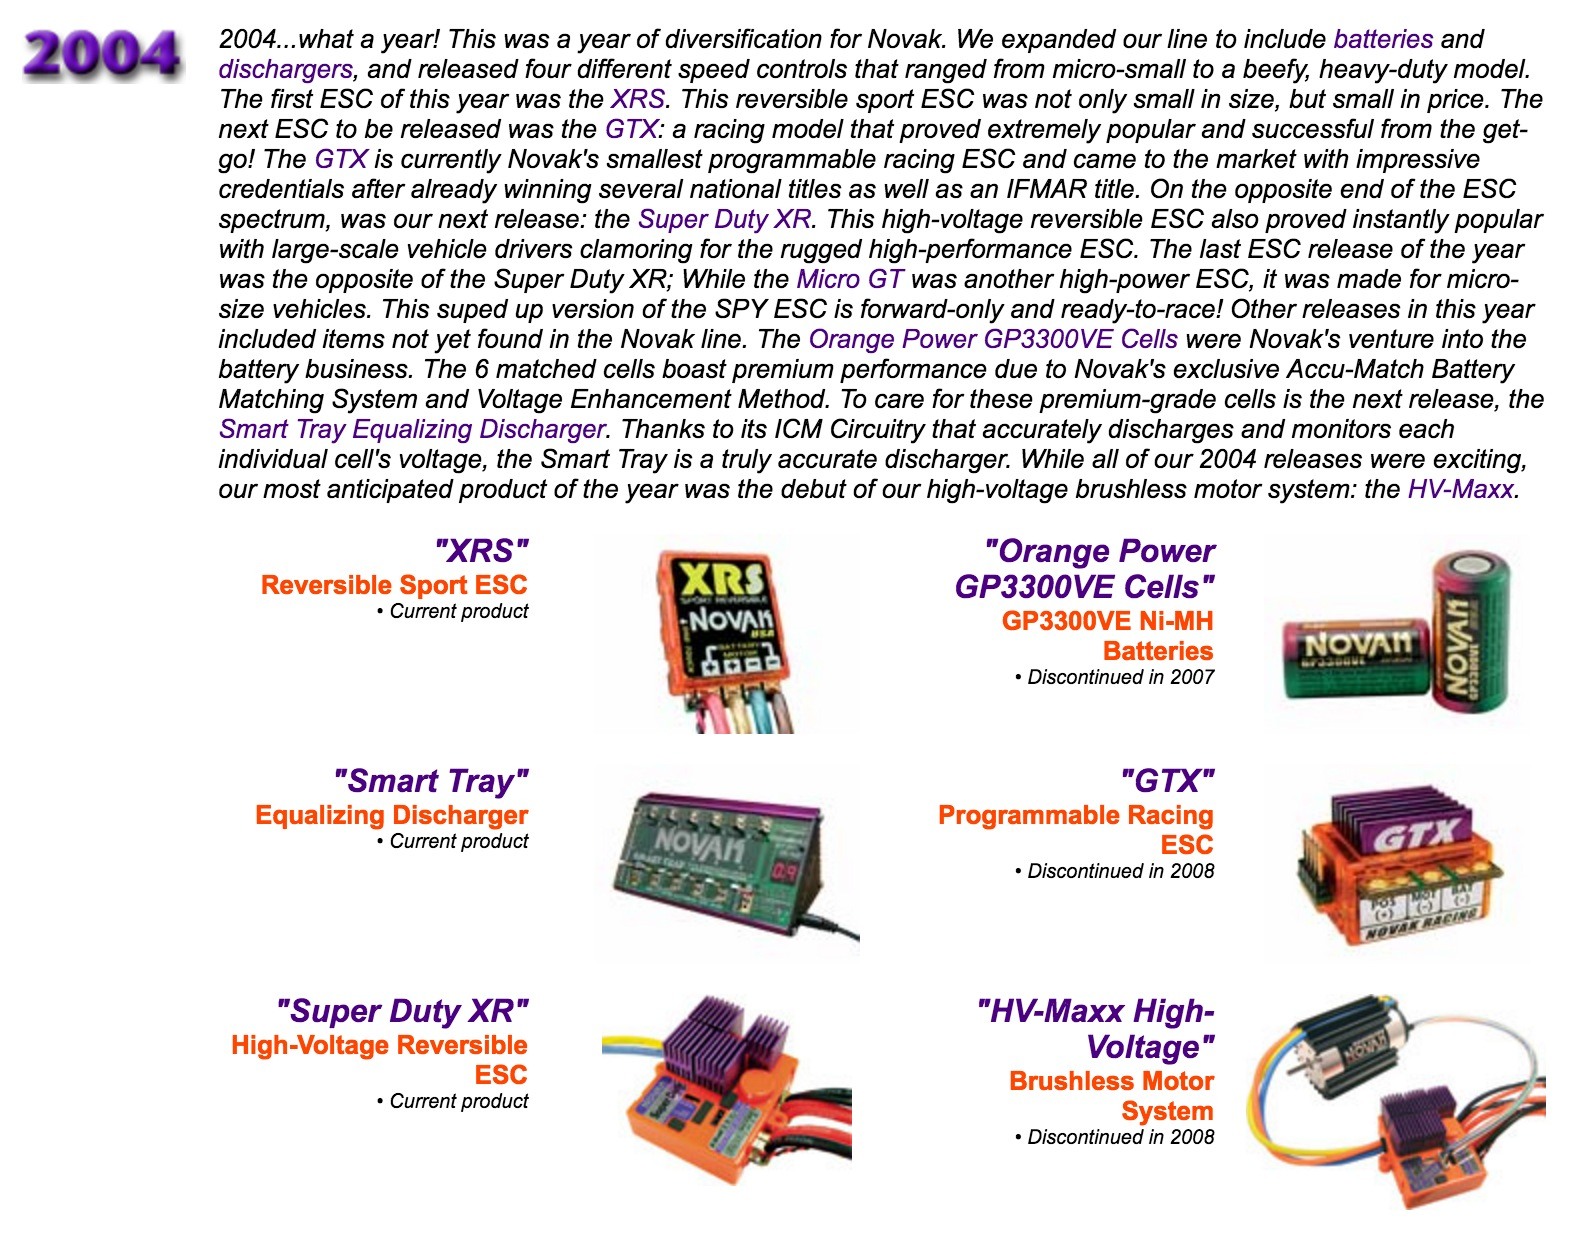 Rc Esc Wiring Diagram. Hobbywing Esc Wiring-diagram, Brushless Drill Rc Brushless Esc Wiring Diagram on brushless generator diagram, brushless motor parts diagram, castle sidewinder 3 brushless wiring-diagram, brushless electric motor diagram, novak rooster reversible esc wiring-diagram, delta brushless wiring-diagram, dc brushless wiring-diagram, brushless outrunner wiring-diagram,